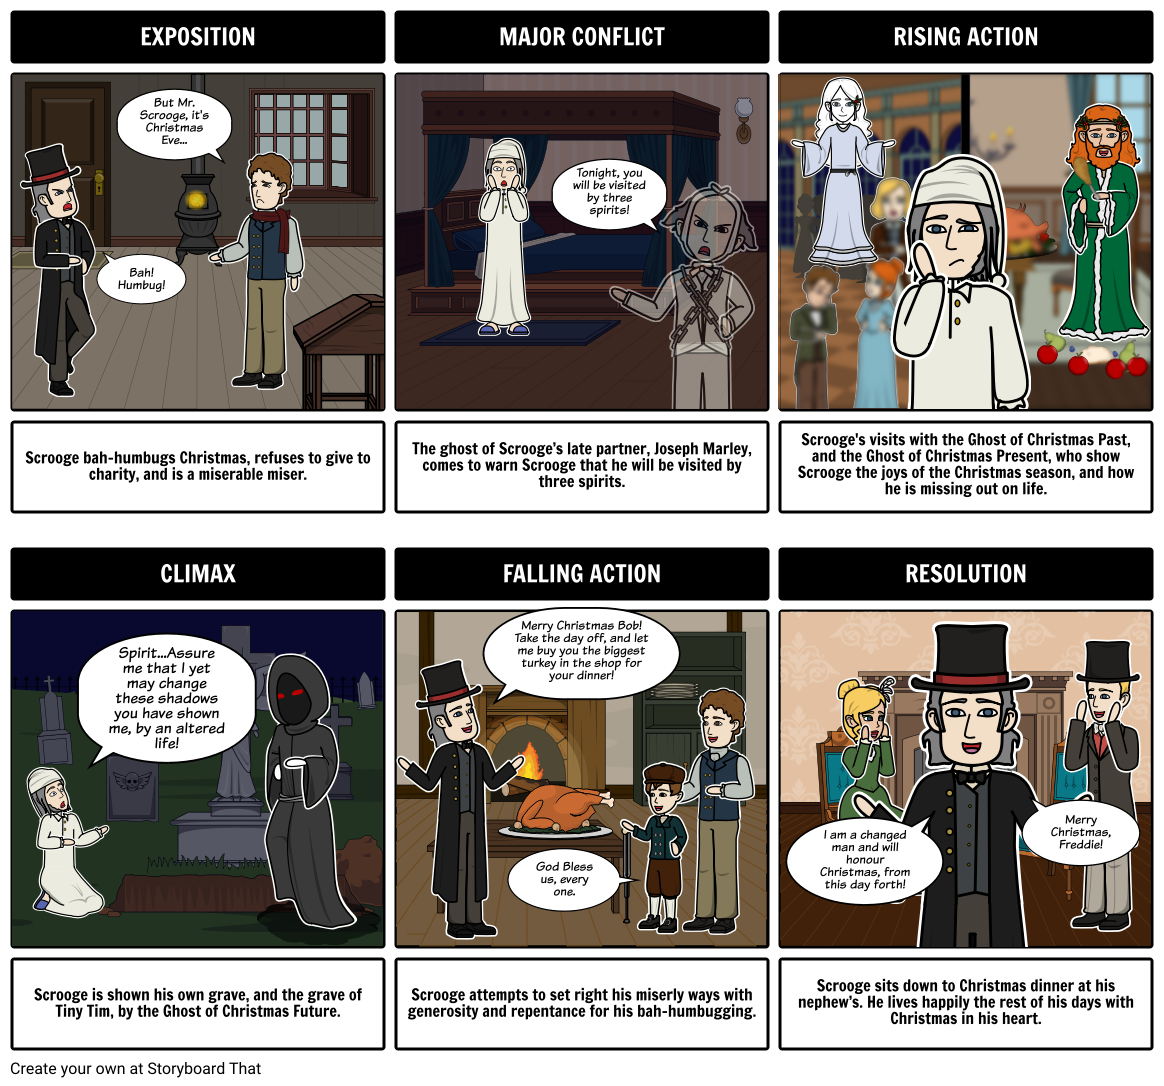 205 Best A Christmas Carol Images On Pinterest: A Christmas Carol Plot Diagram Storyboard By Nathanael